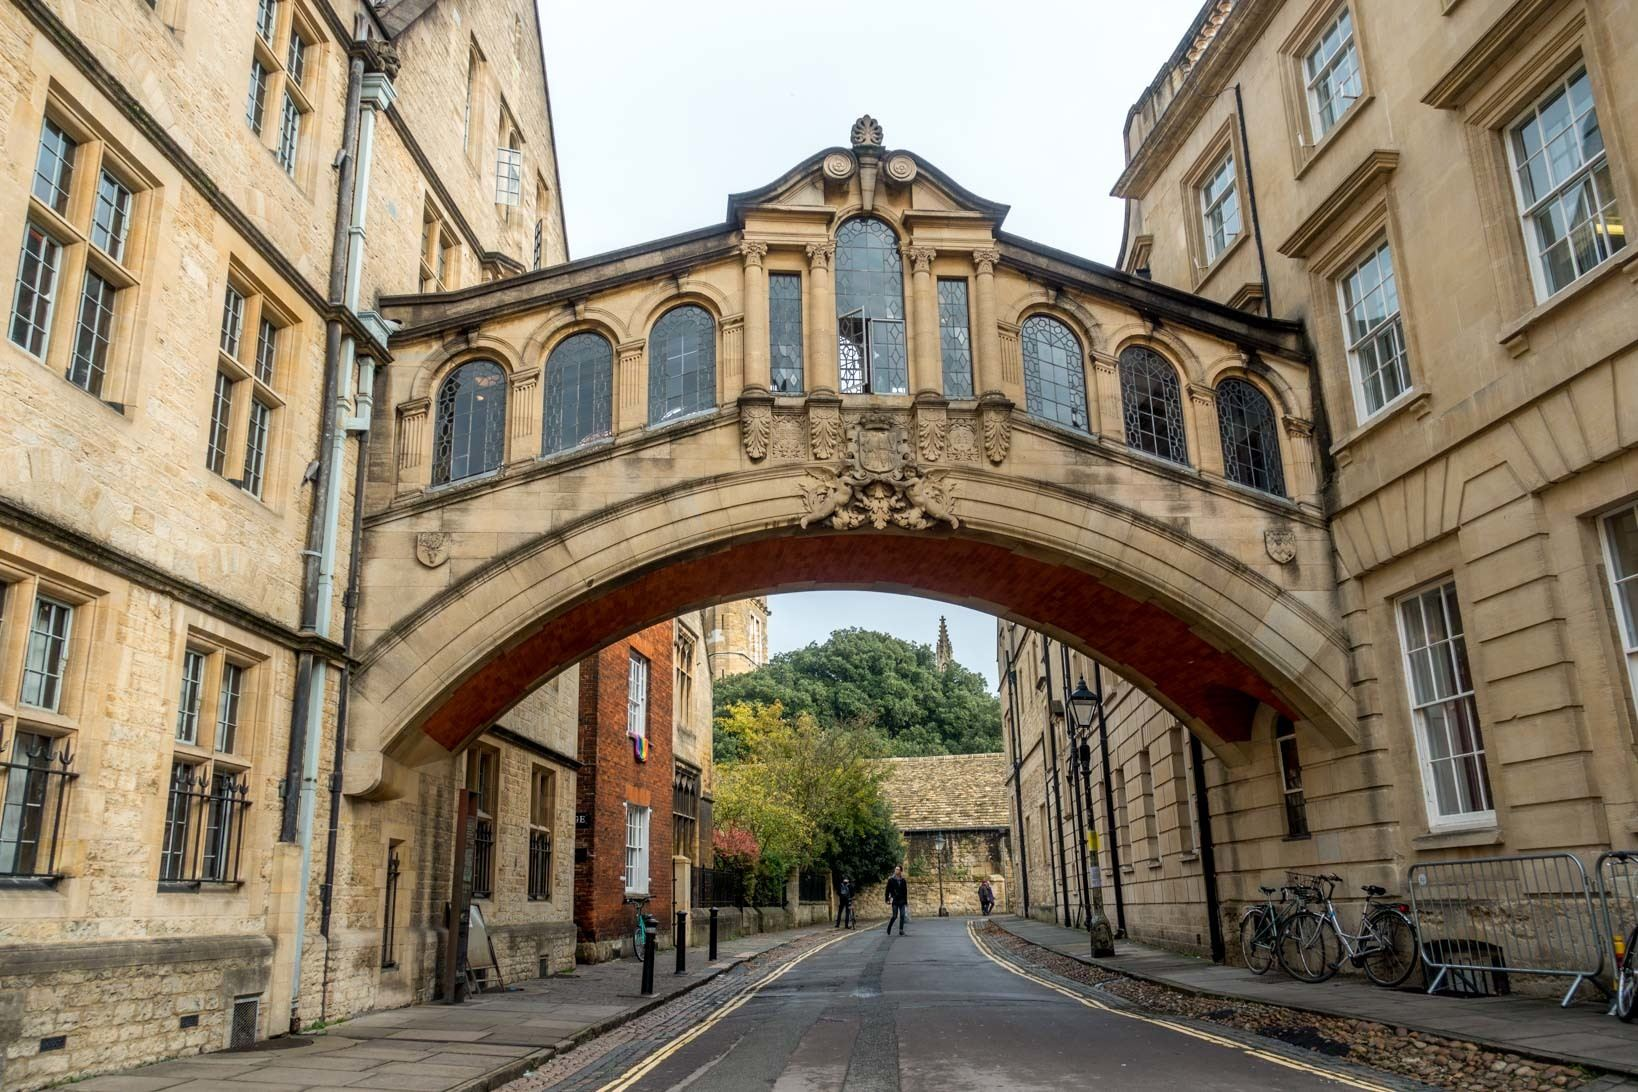 The Bridge of Sighs is one of the unique places to see in Oxford, England